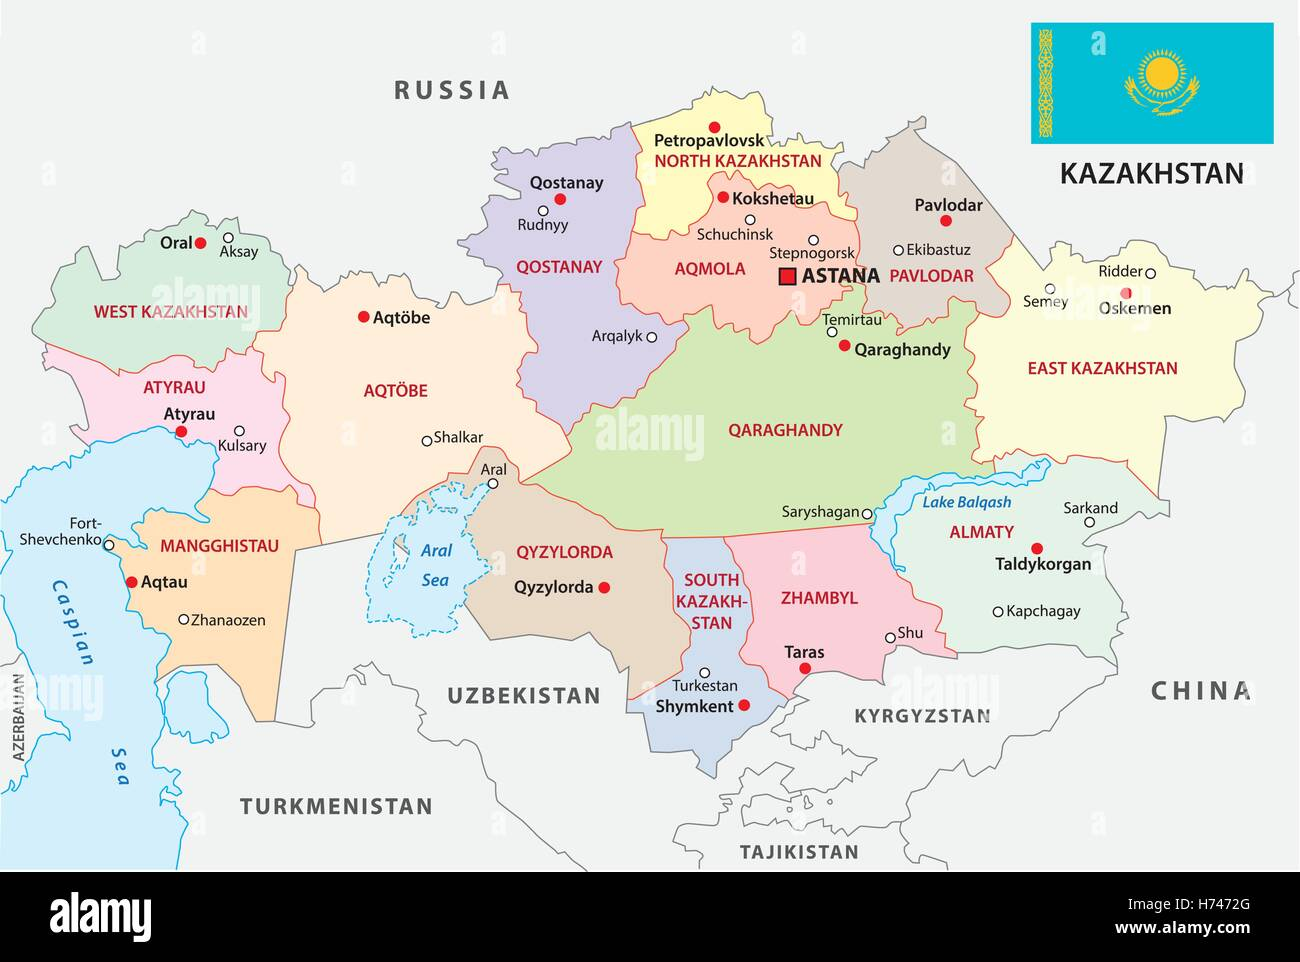 kazakhstan administrative map with flag - Stock Image